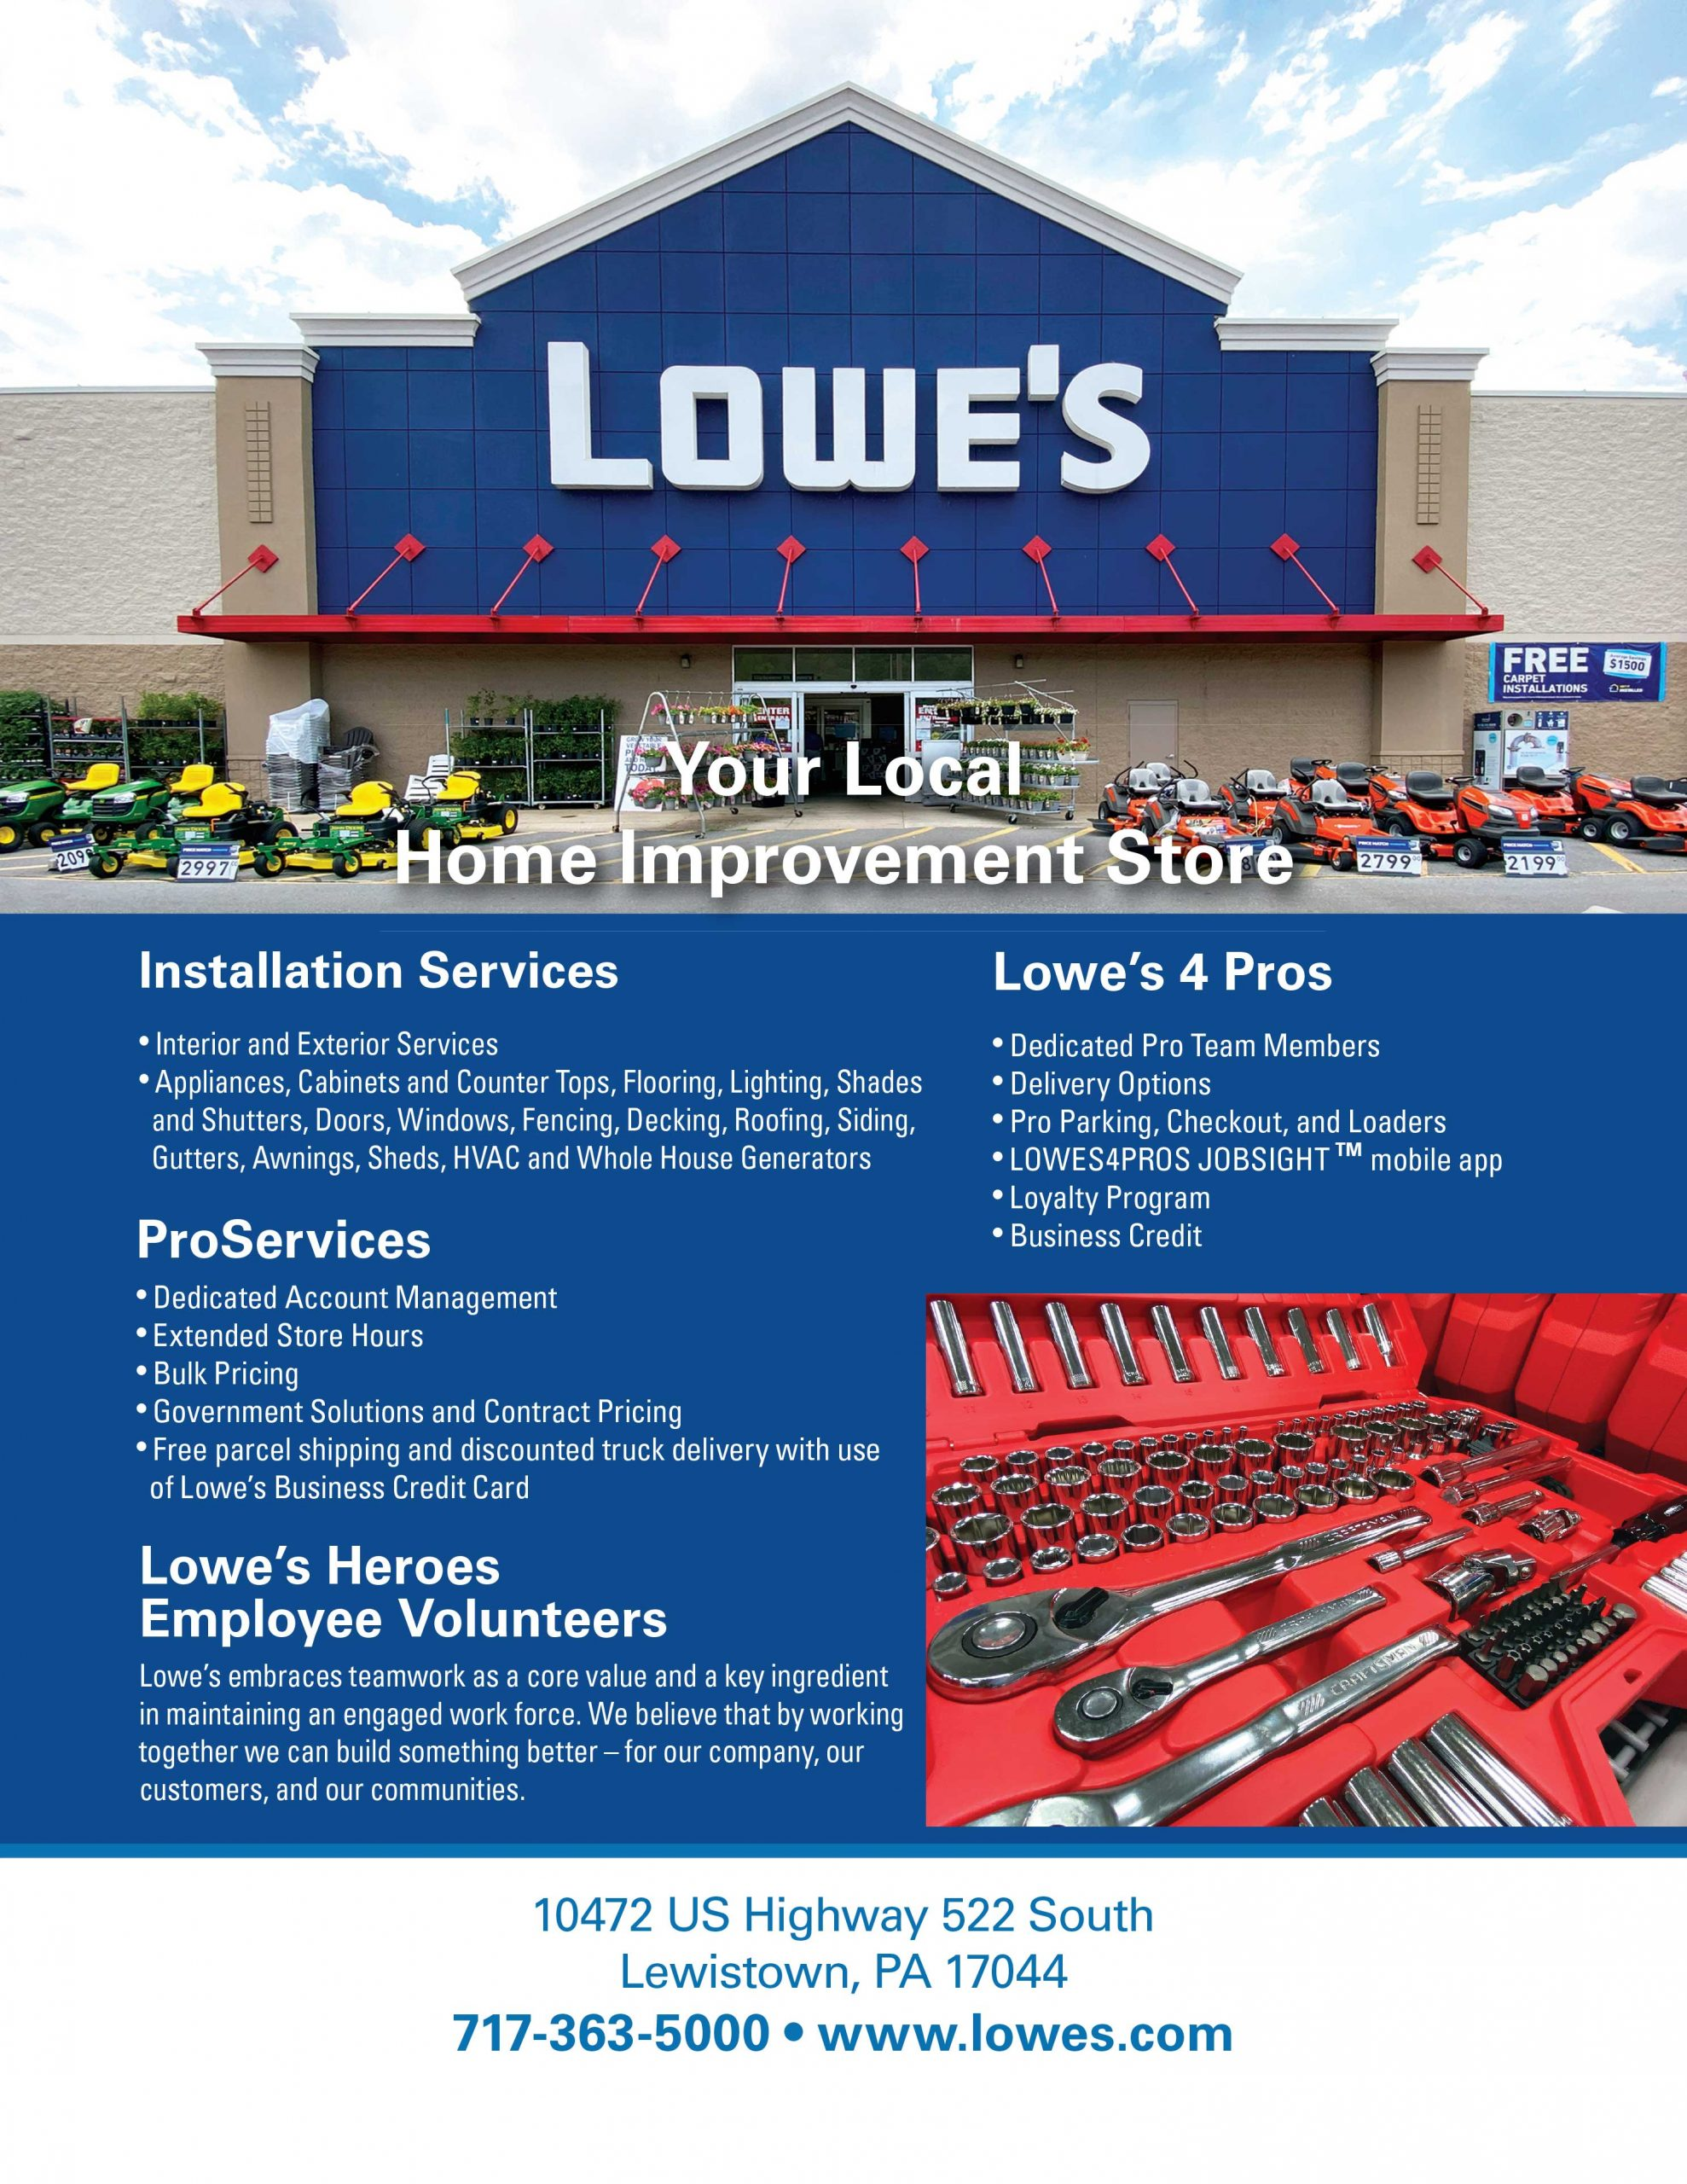 "<center>Lowe's | <b><a href=""https://www.lowes.com"" target=""_blank"" rel=""noopener noreferrer"">CLICK HERE to view the website</a></b></center>"